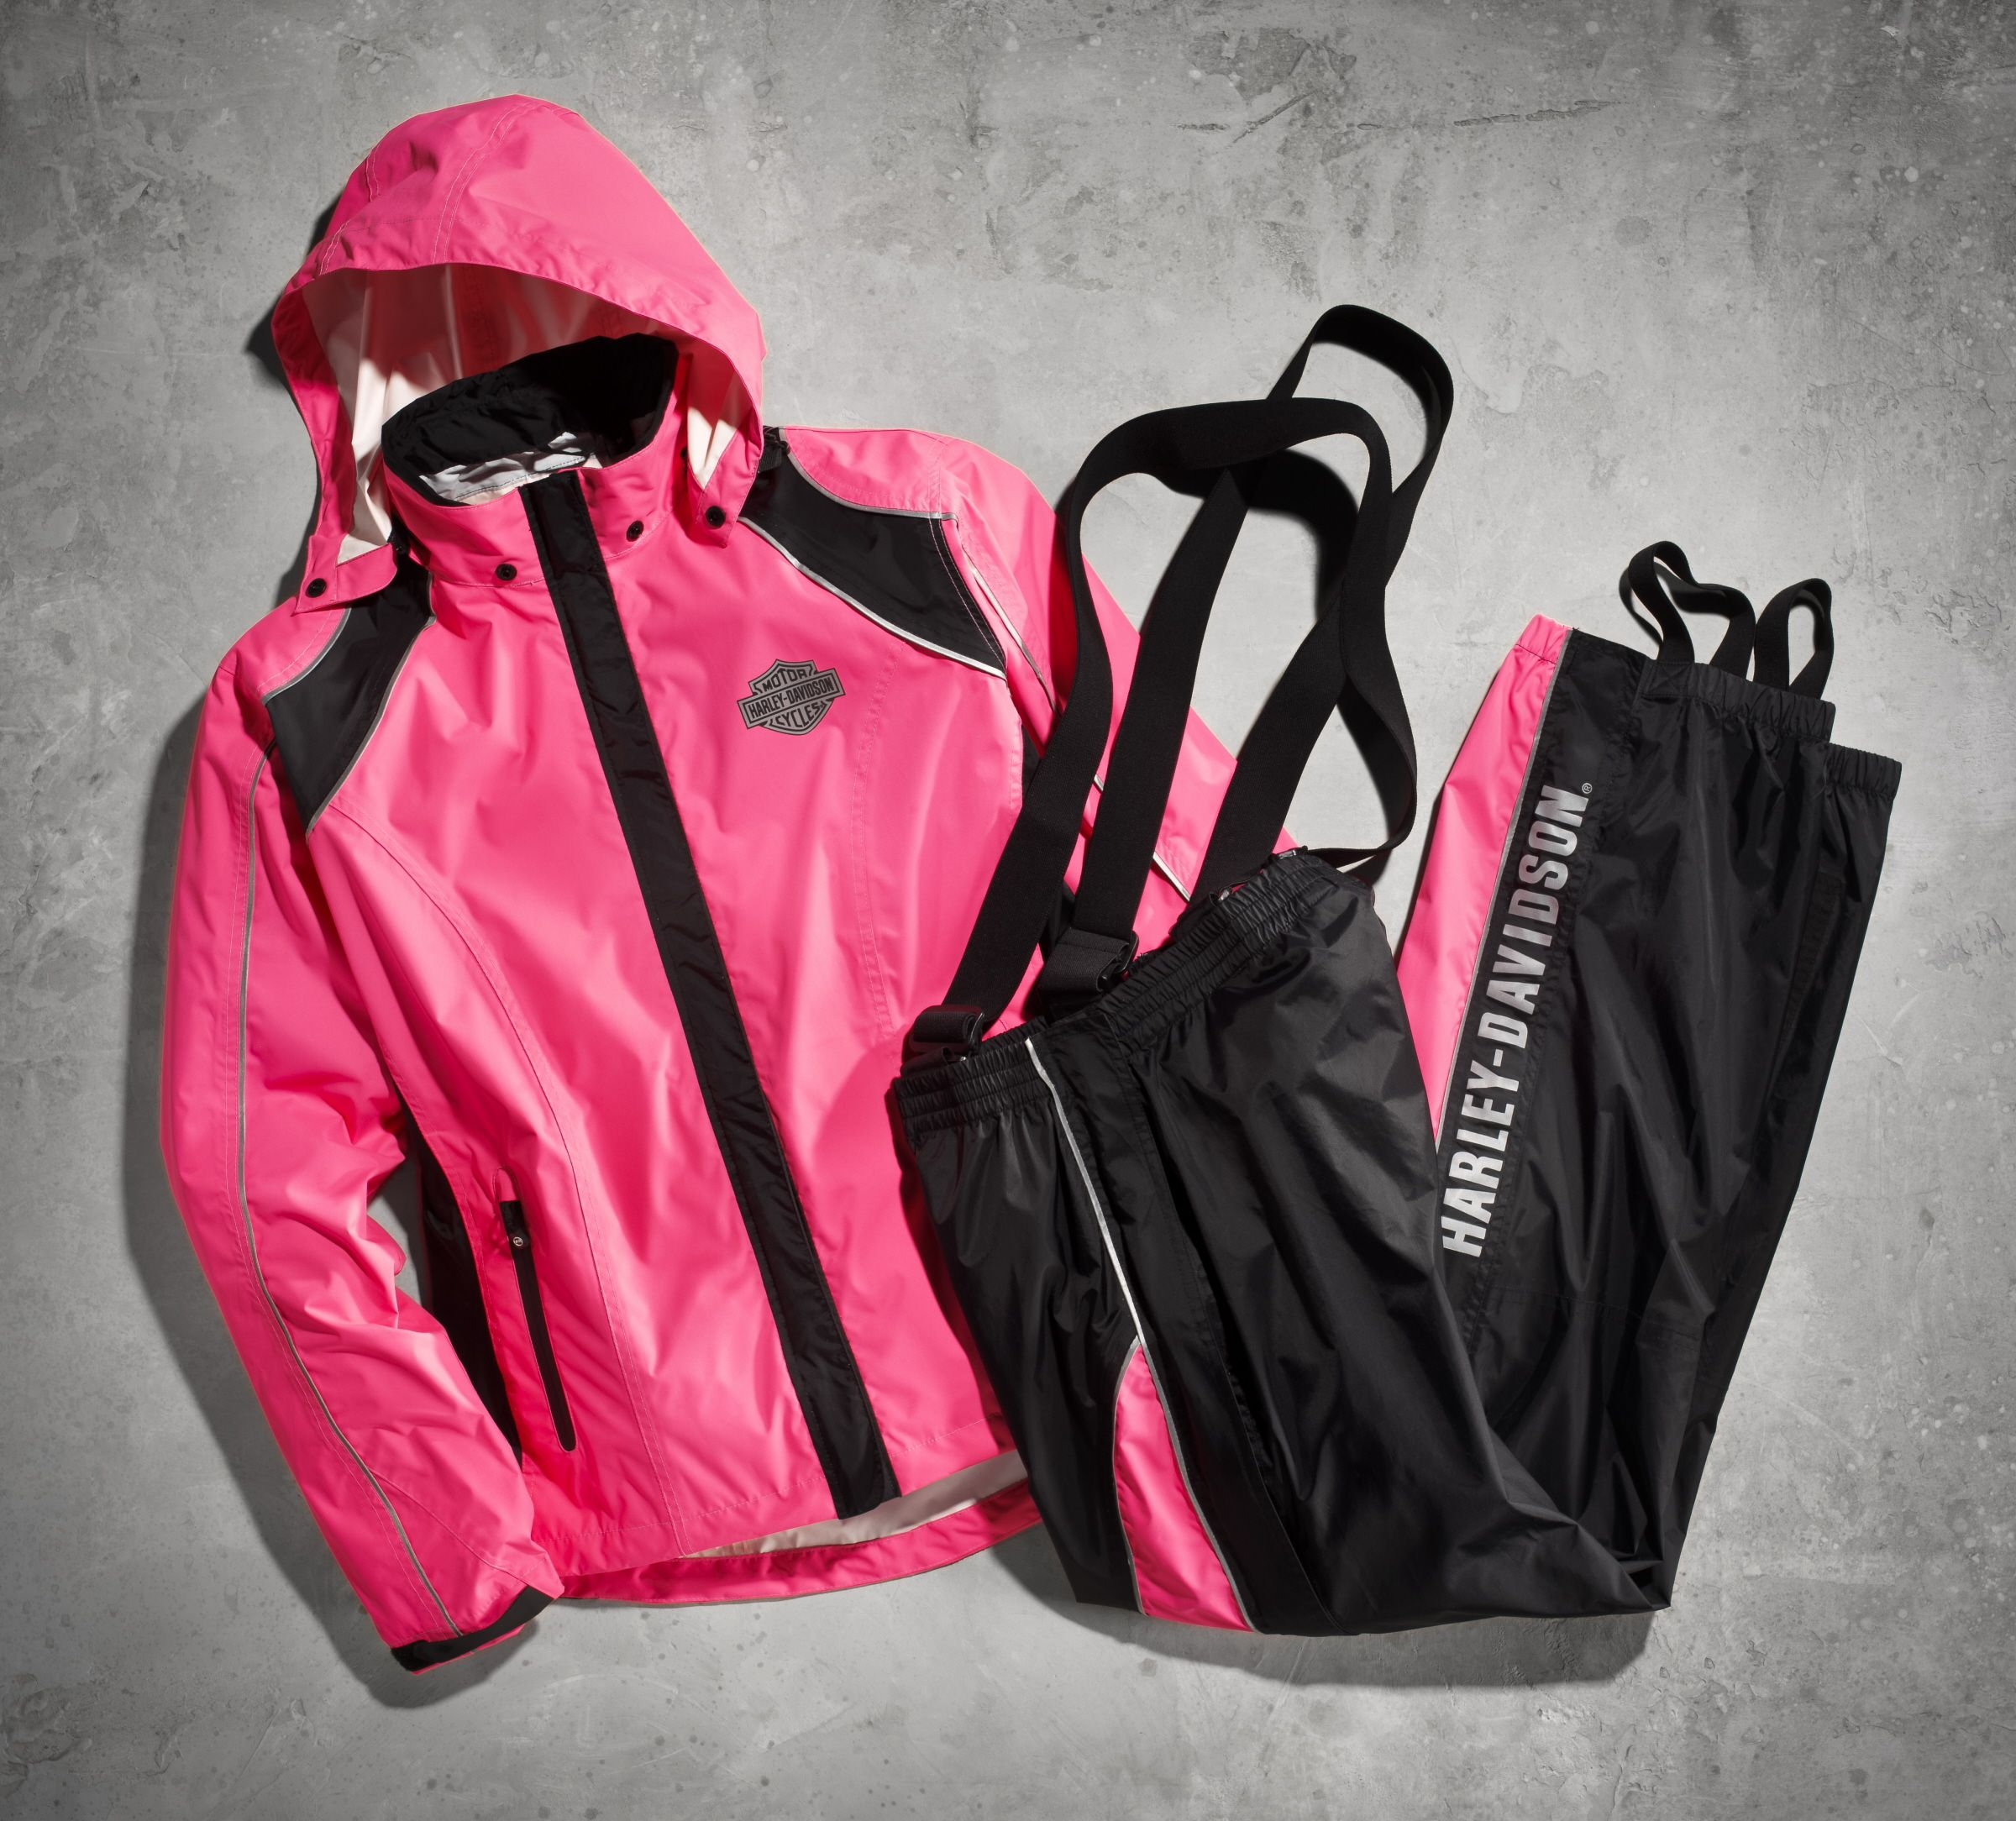 Many Times You Ride To Escape But In The Rain You Ride To Be Seen Harley Davidson Women S Pink Hi Vis Harley Davidson Clothing Harley Davidson Harley Gear